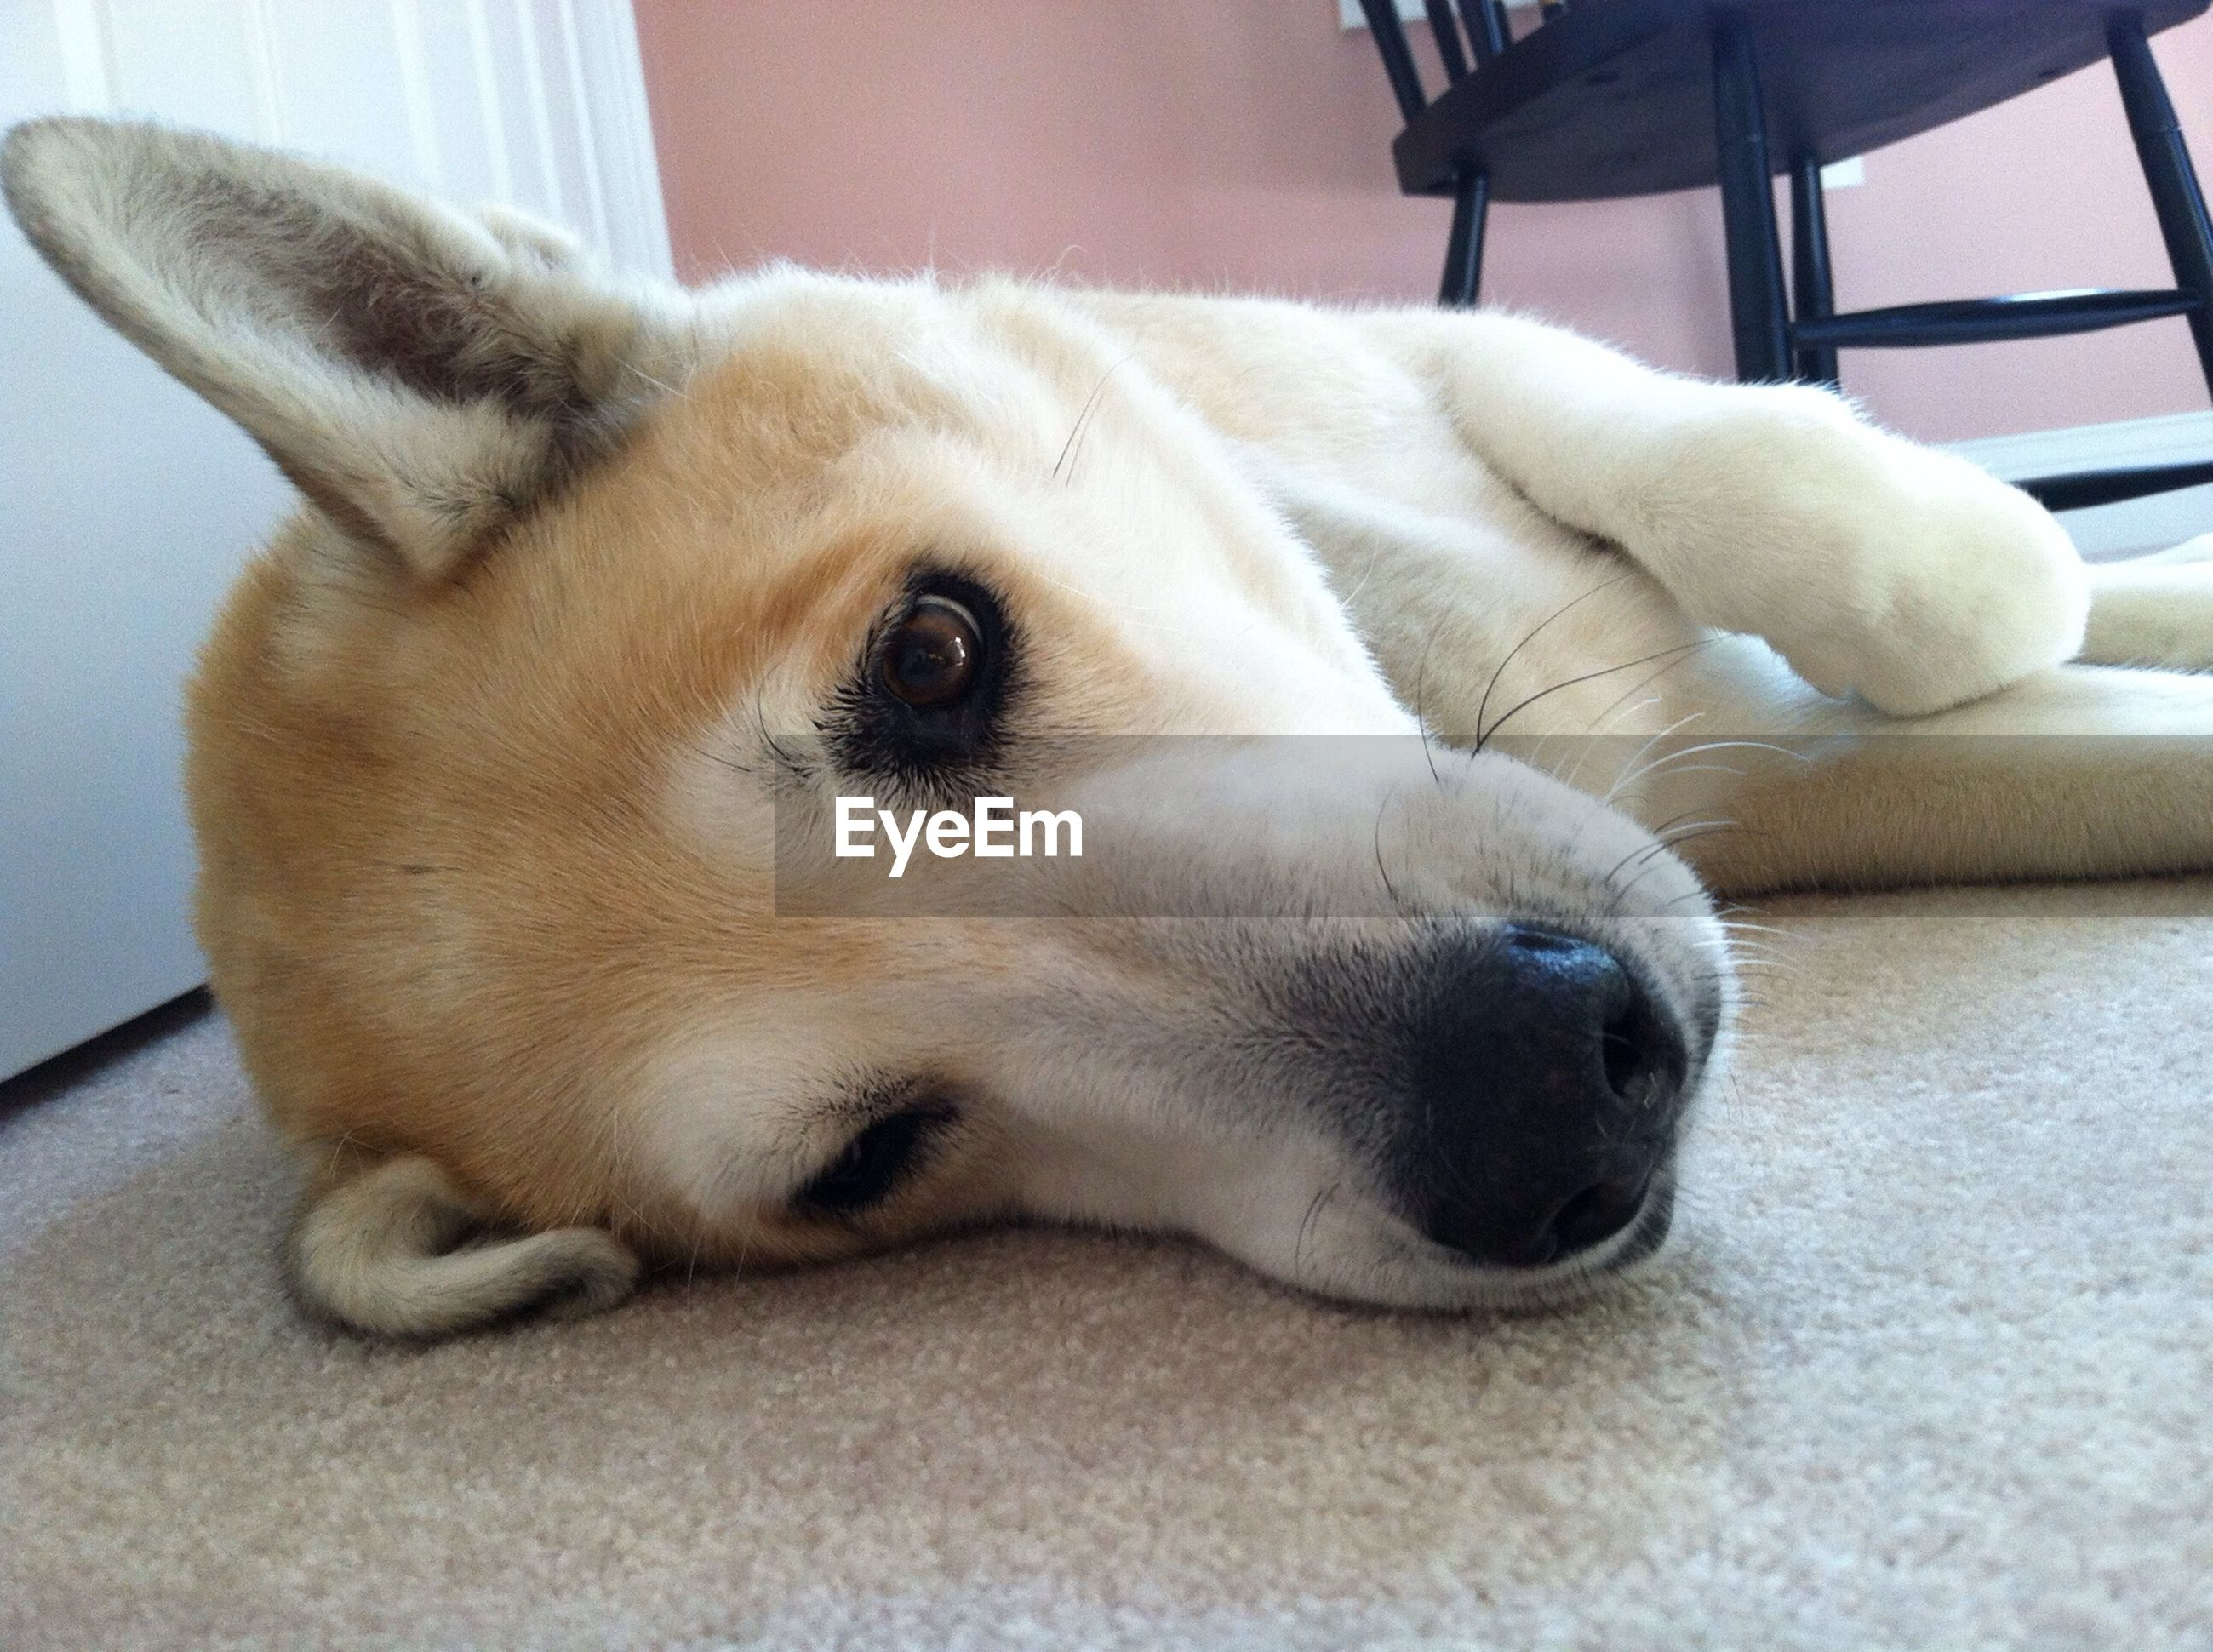 dog, pets, indoors, domestic animals, animal themes, one animal, mammal, relaxation, home interior, resting, lying down, close-up, animal head, bed, sofa, portrait, home, no people, focus on foreground, looking at camera